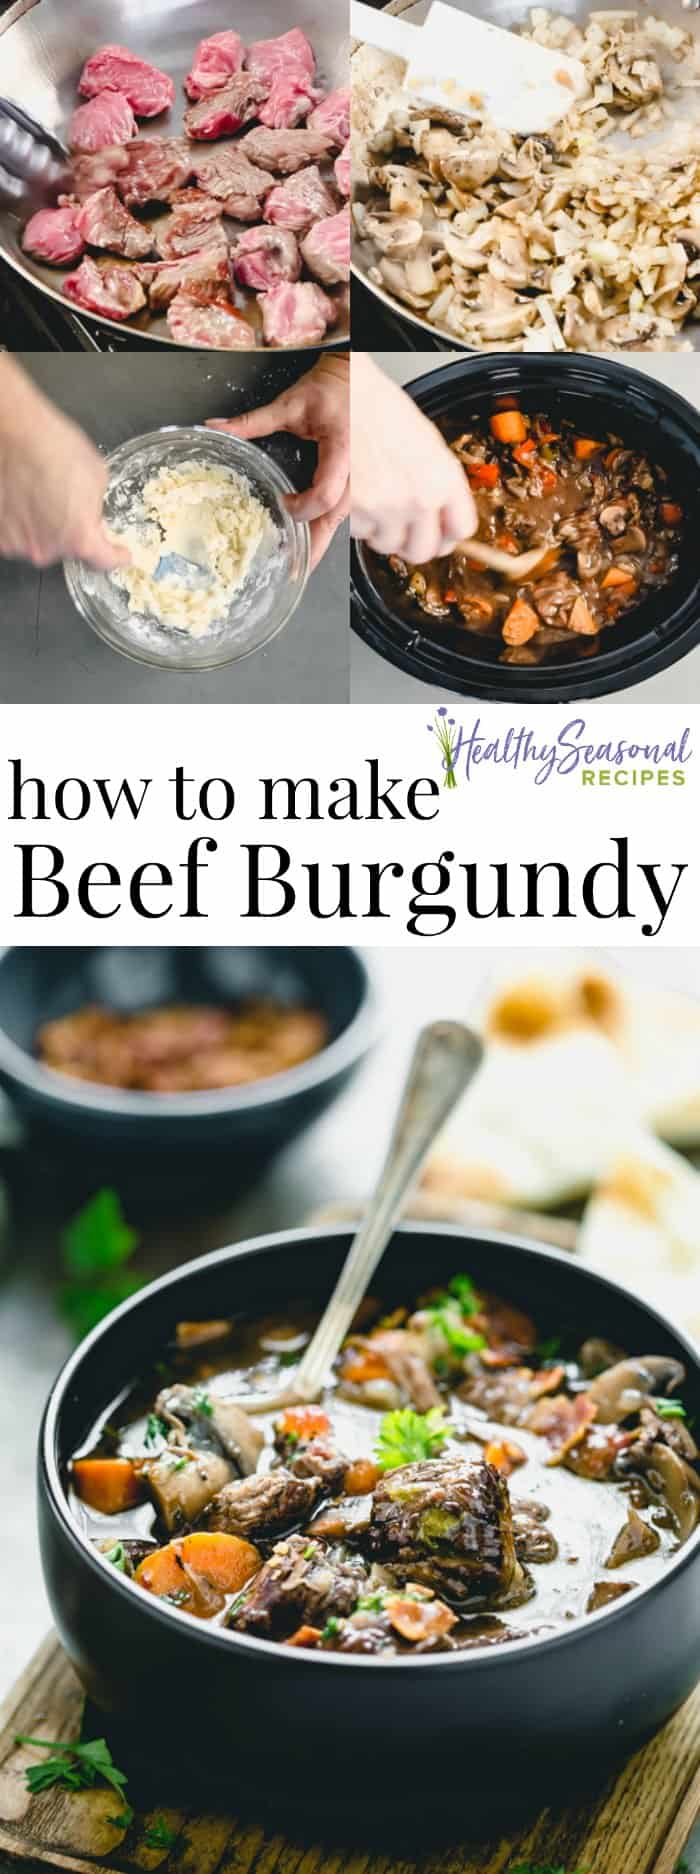 Making delicious classic Beef Burgundy is so easy to do in a slow cooker or crockpot! Here is a recipe that will show you how to make the best Beef Burgundy Stew with the step by step photos and video too. Tender chunks of chuck, mushrooms and wine sauce! #healthyseasonal #BeefStew #beefburgundy #wine #Mushrooms #slowcooker #crockpot